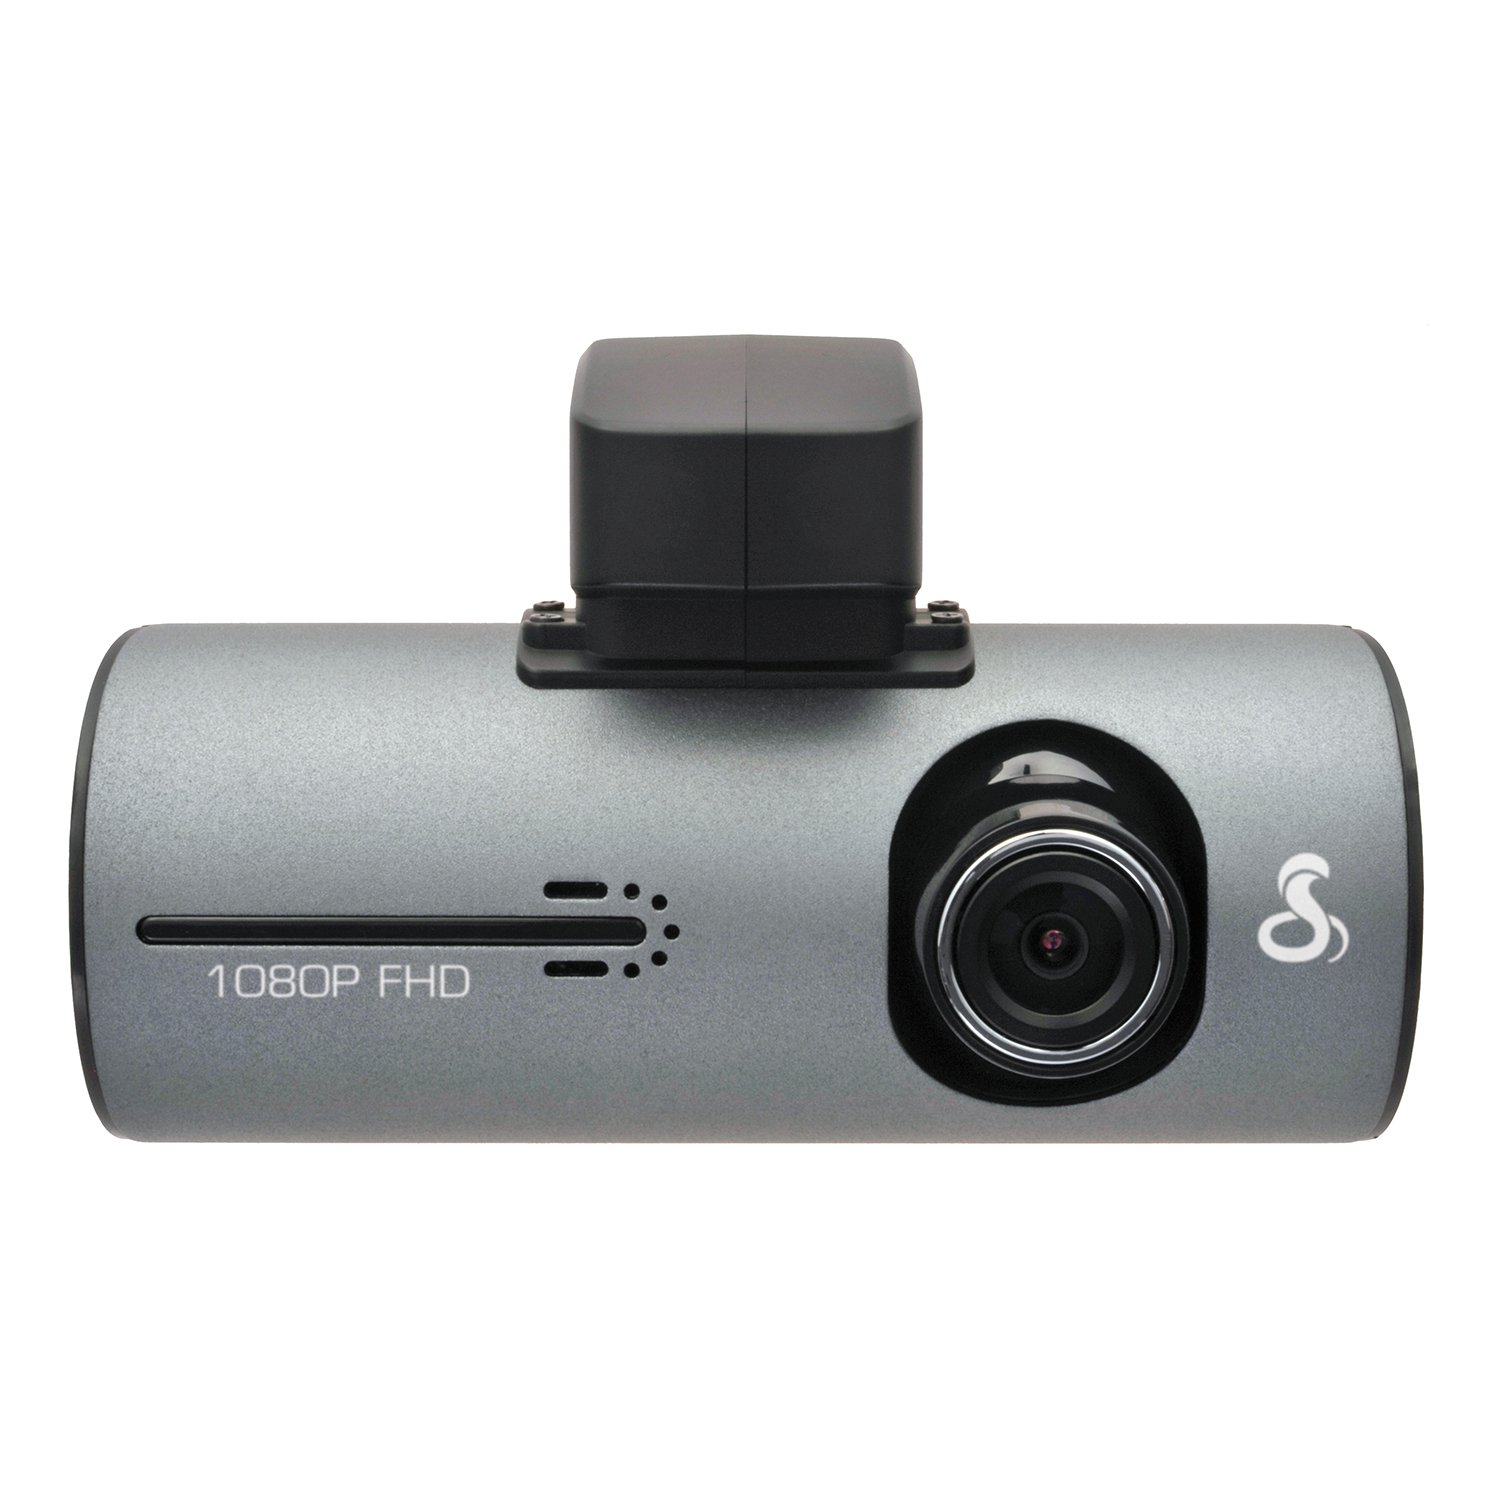 Certified Refurbished Cobra Electronics CDR 840 Drive HD Dash Cam with GPS CDR840 RB